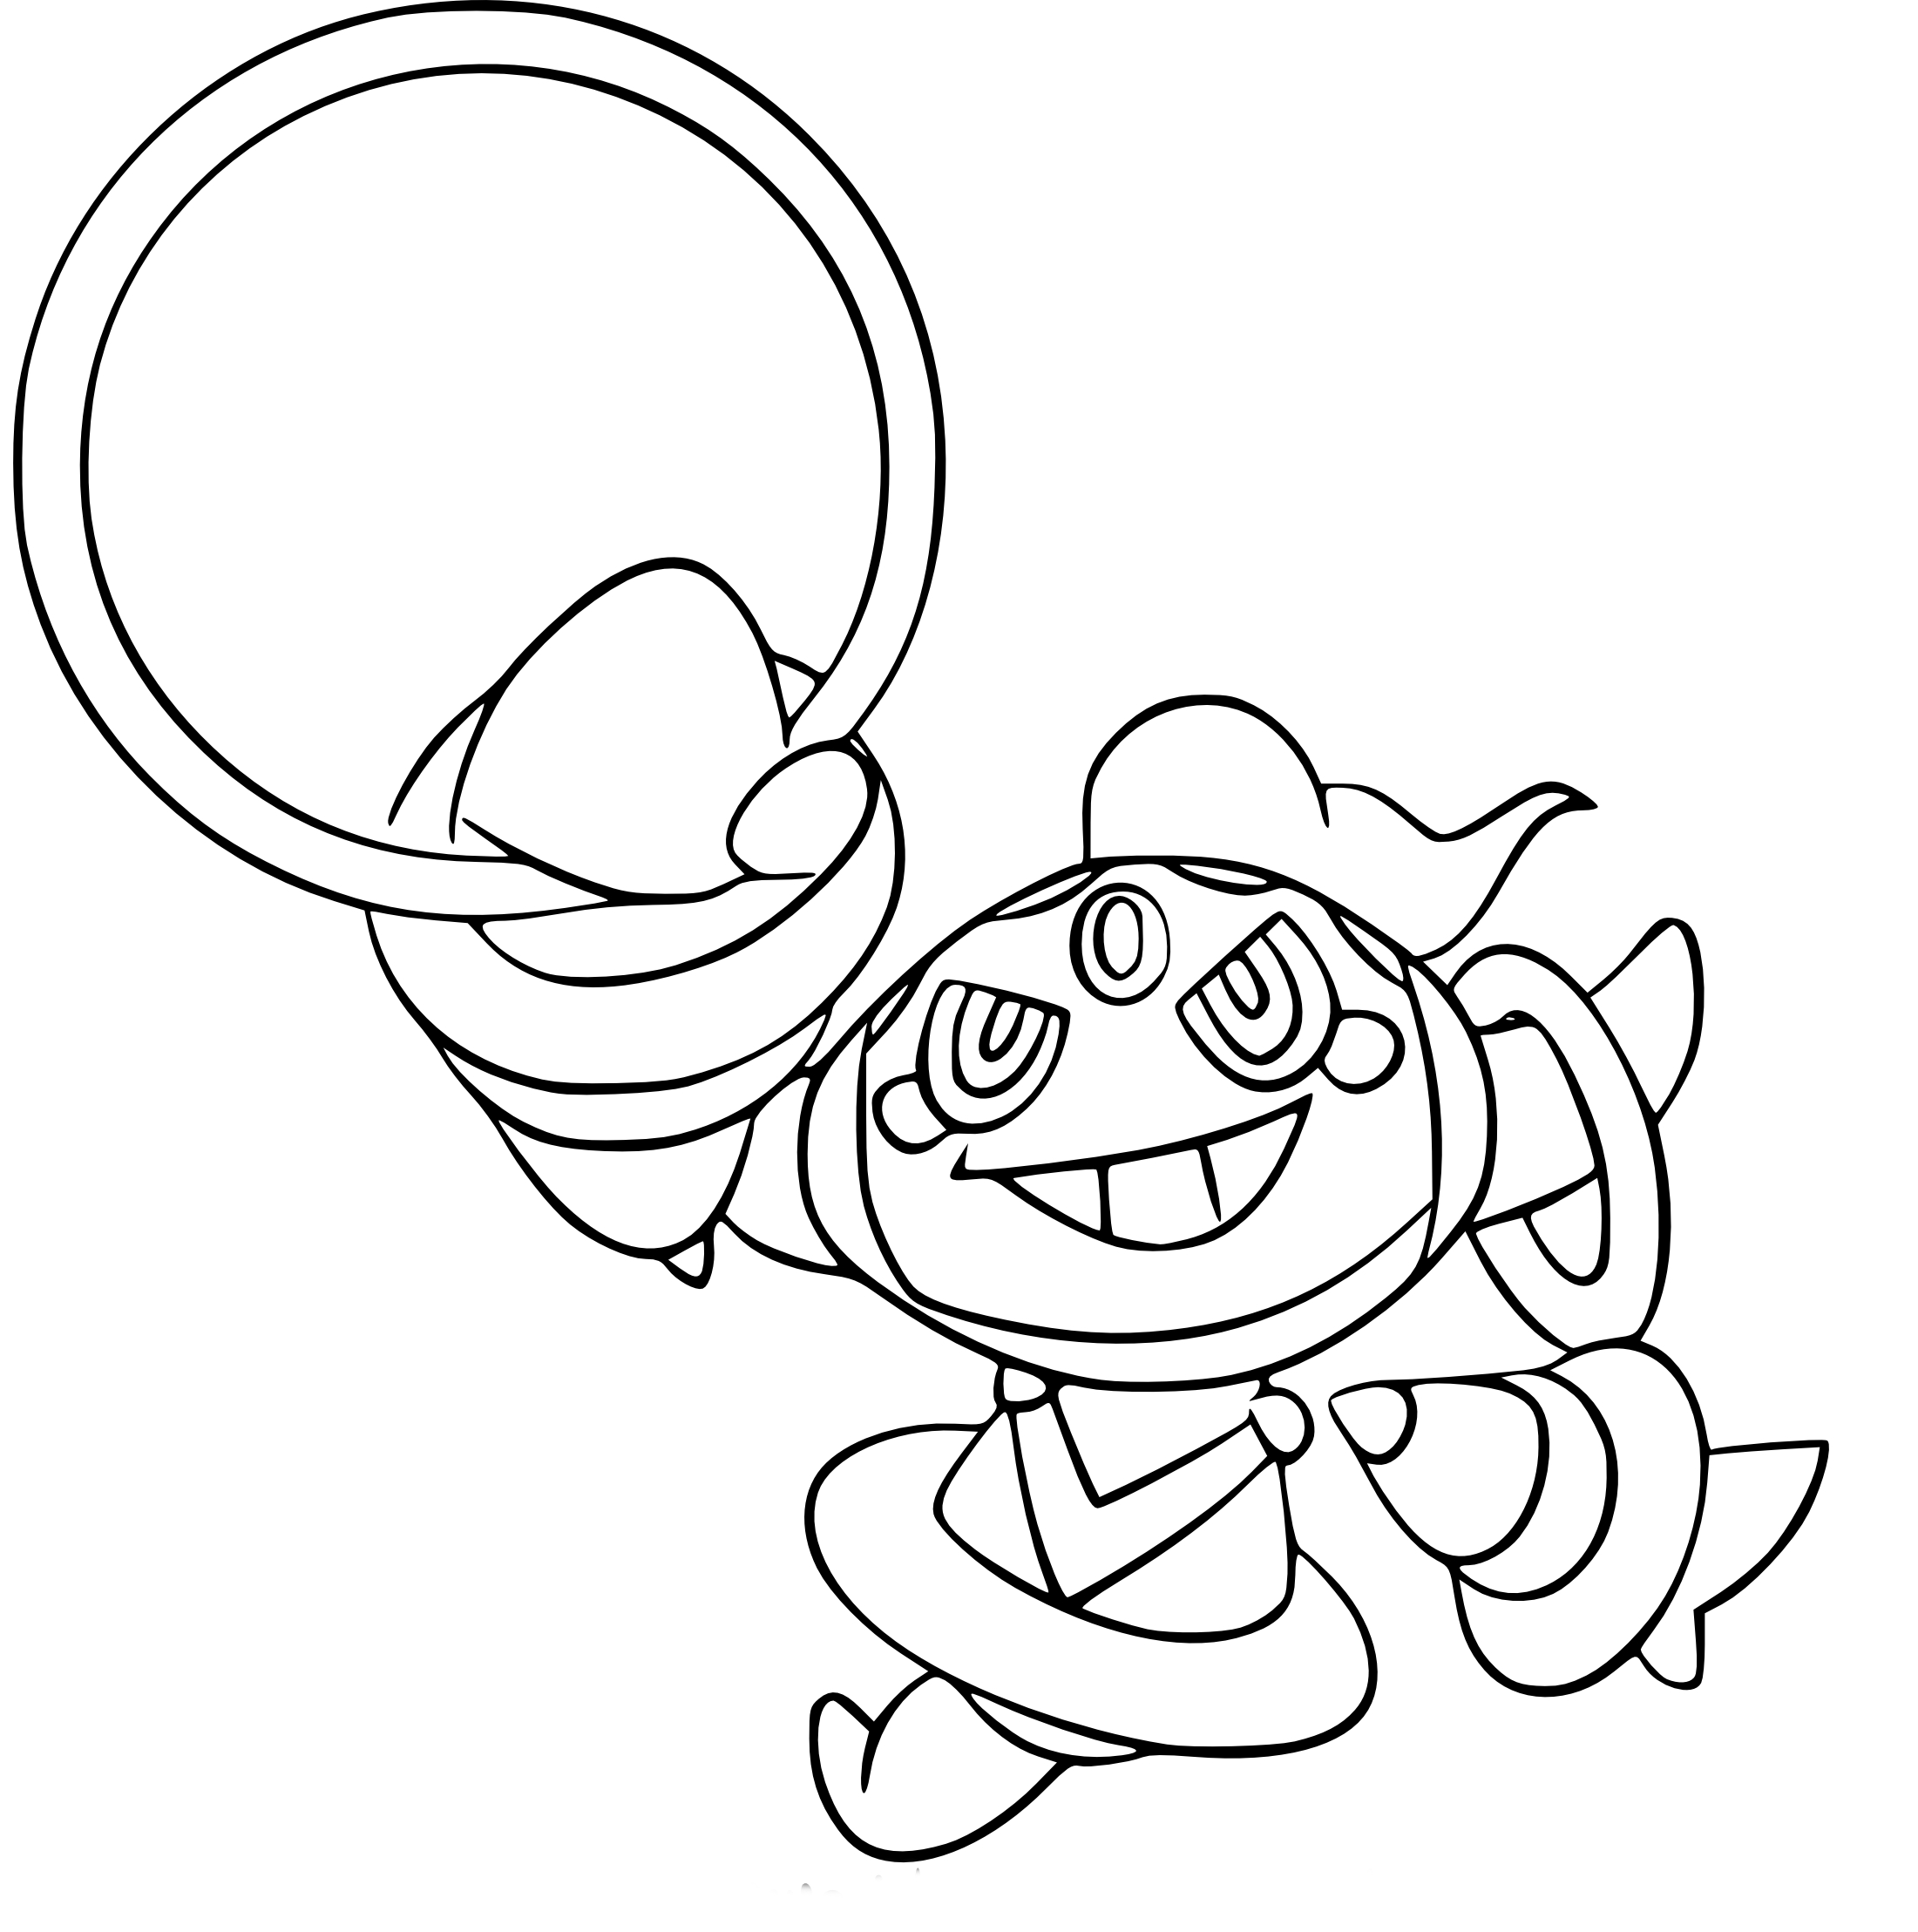 Coloriage hoopa pokemon imprimer - Pokemon a imprimer ...